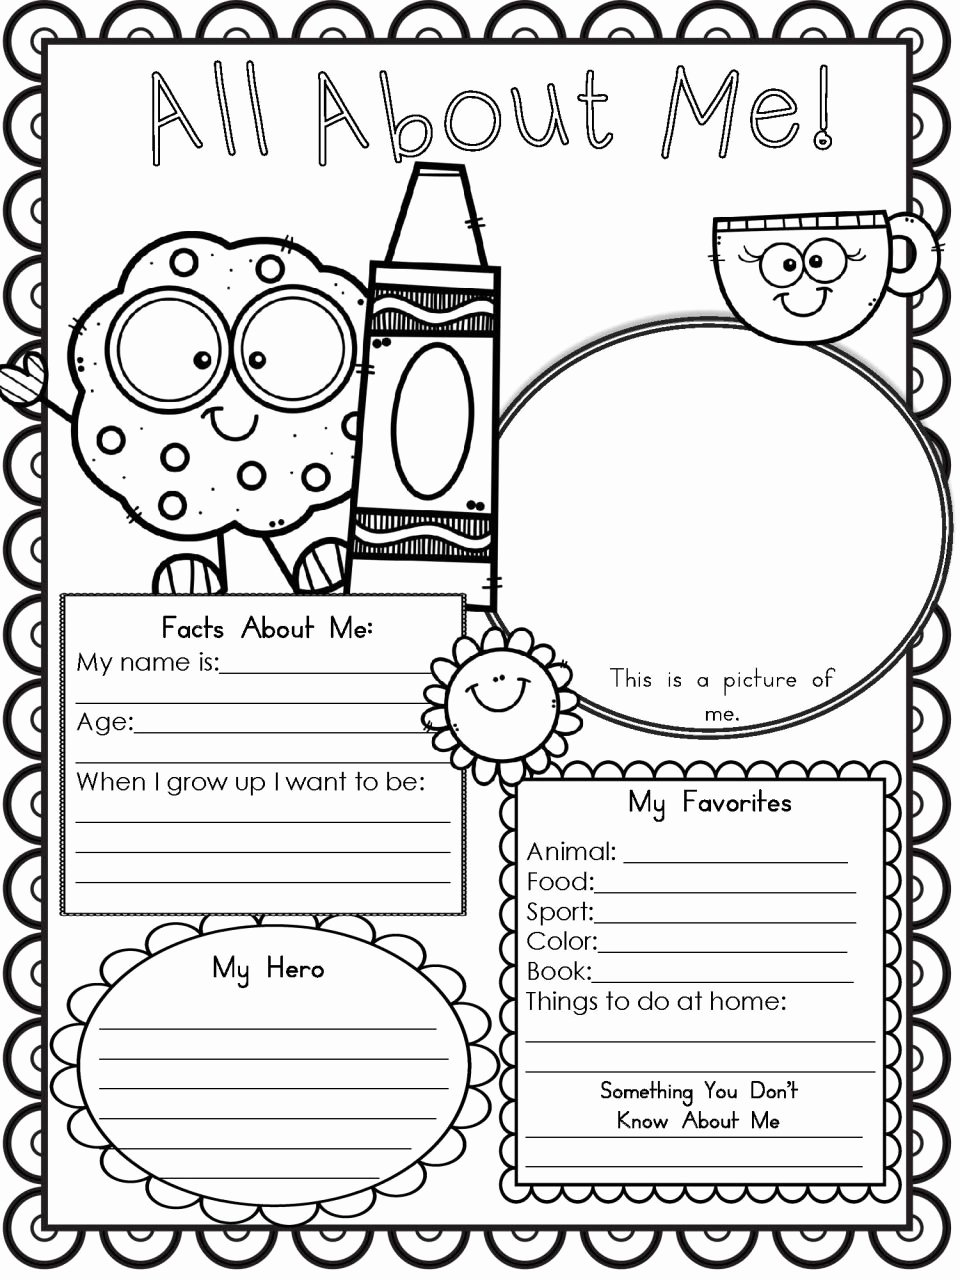 Summer Fun Worksheets for Preschoolers Lovely Worksheet Remarkable Funksheets for Preschoolers Image